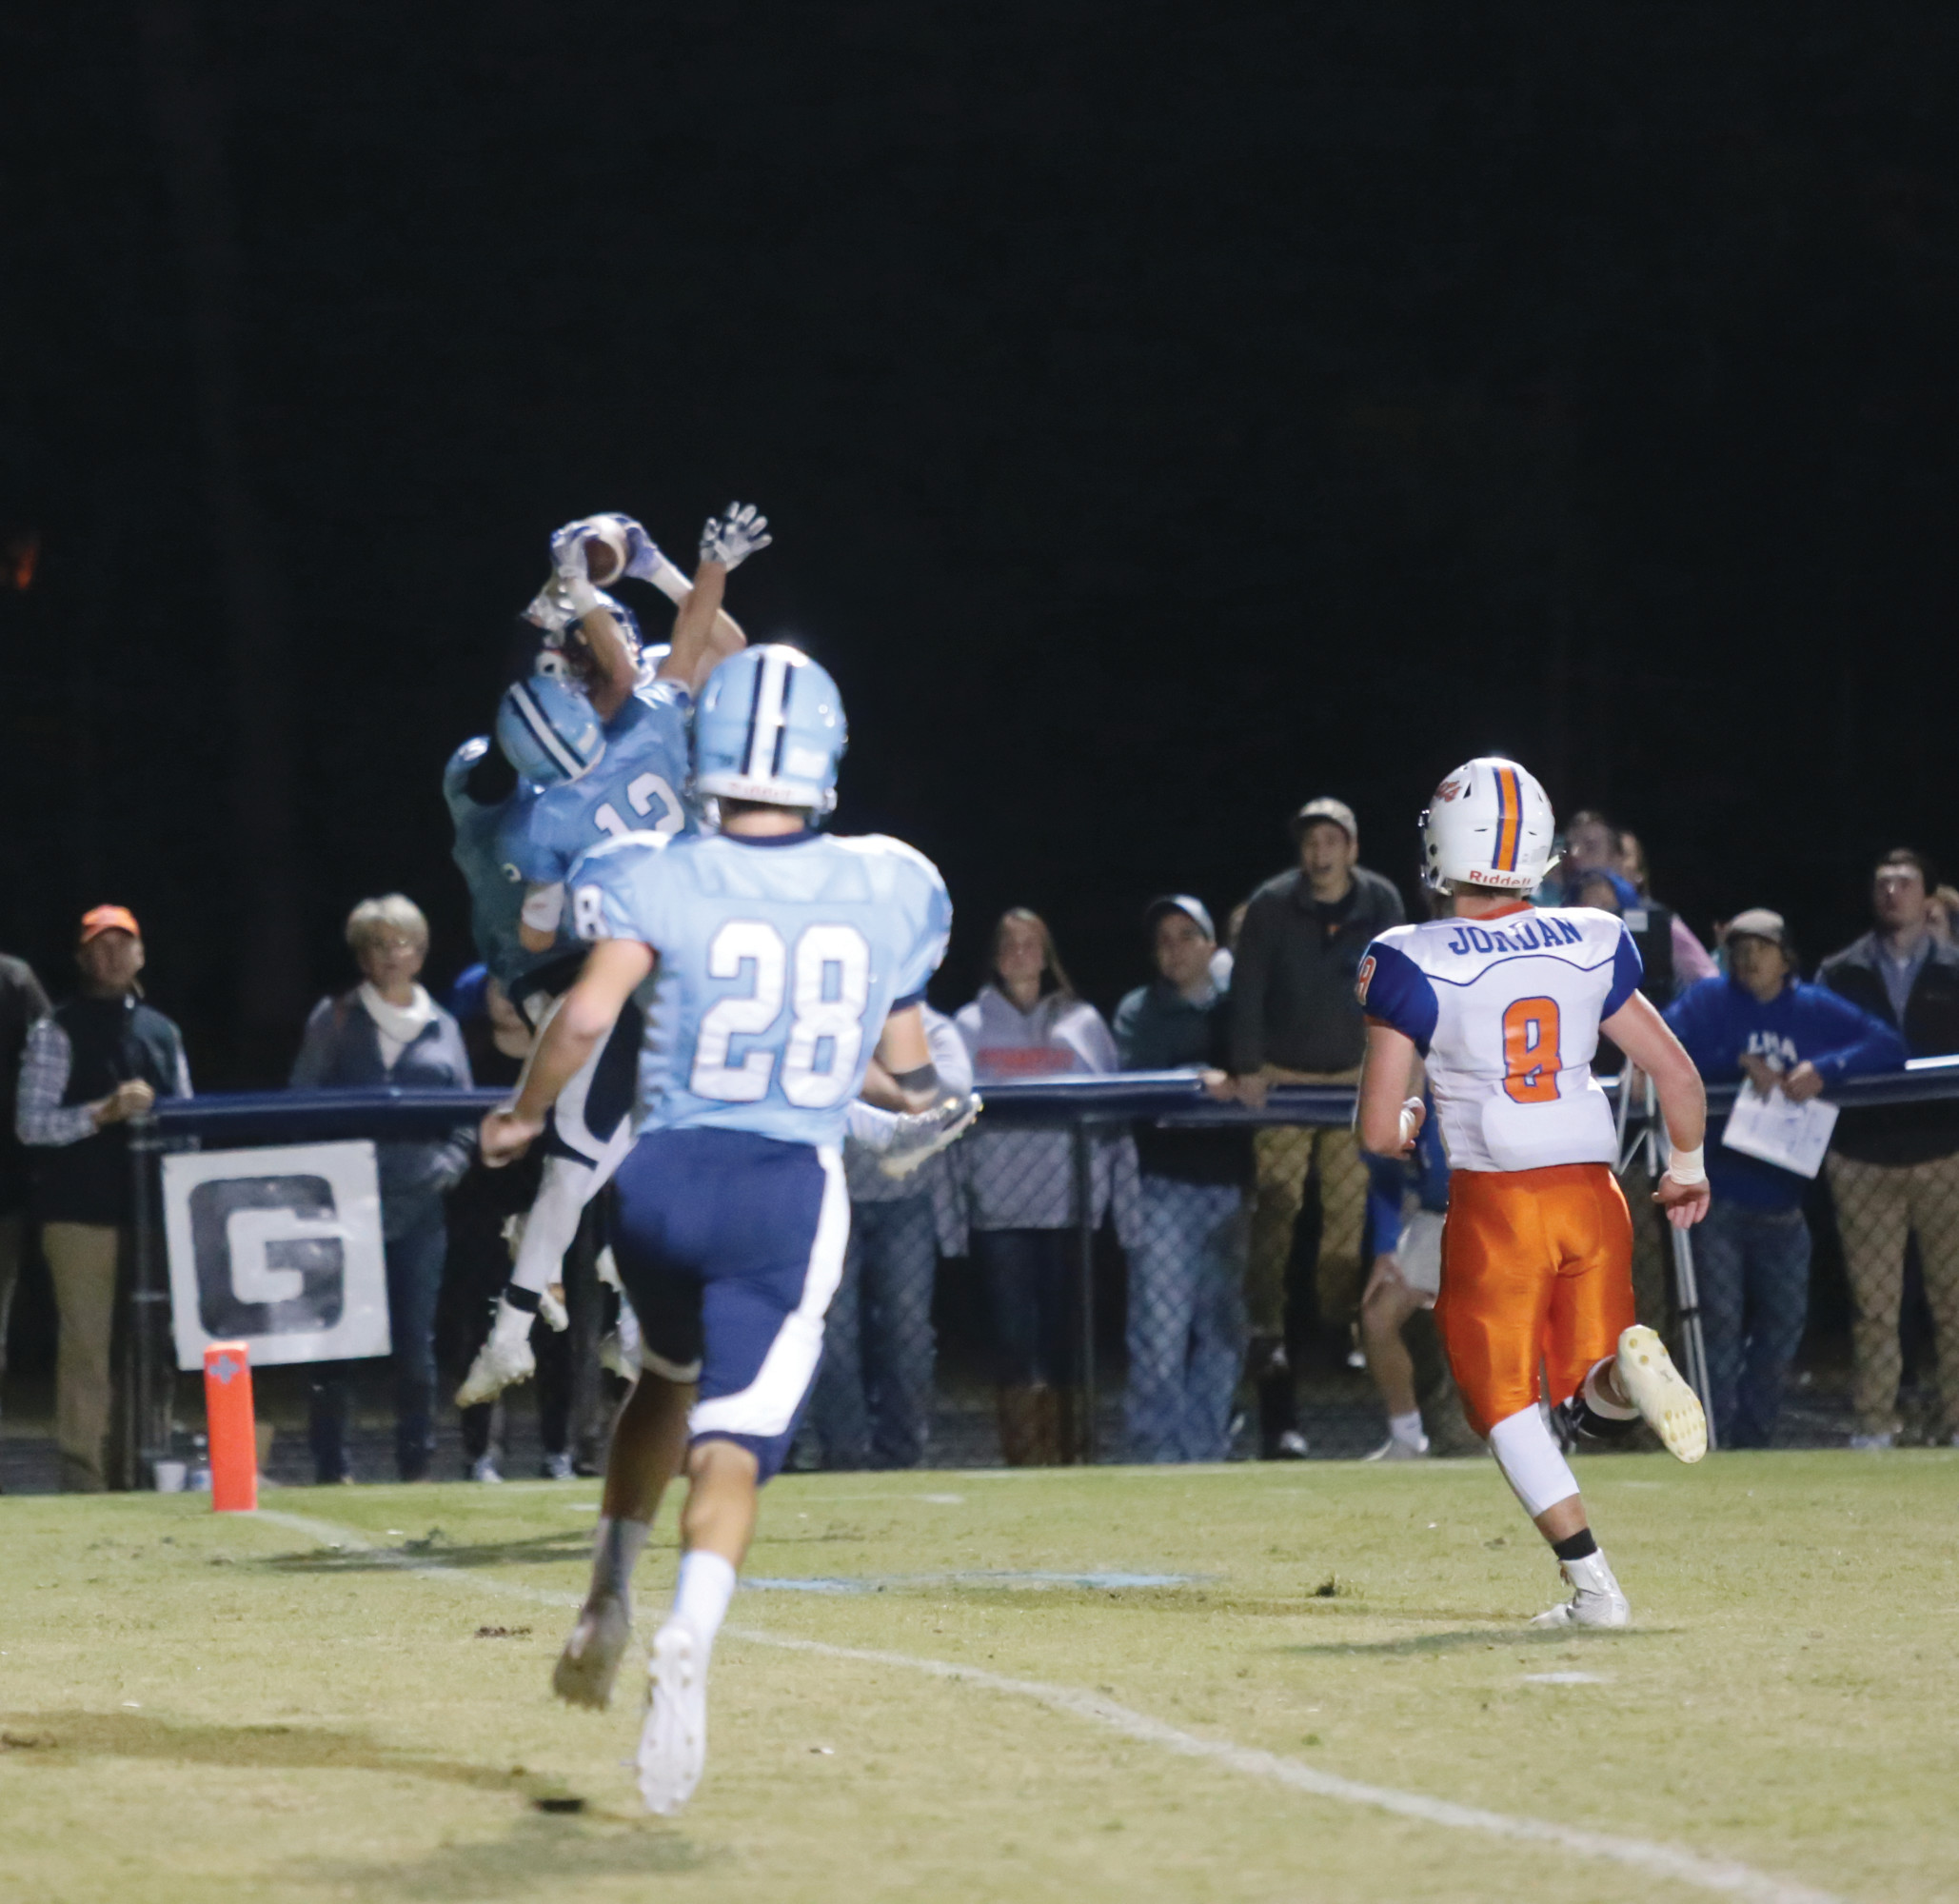 Laurence Manning wide receiver Taylor Lee makes the game-winning touchdown catch in a forest of Wilson Hall defenders. The point-after kick gave the Swampcats a 14-13 victory on Friday at Spencer Field.